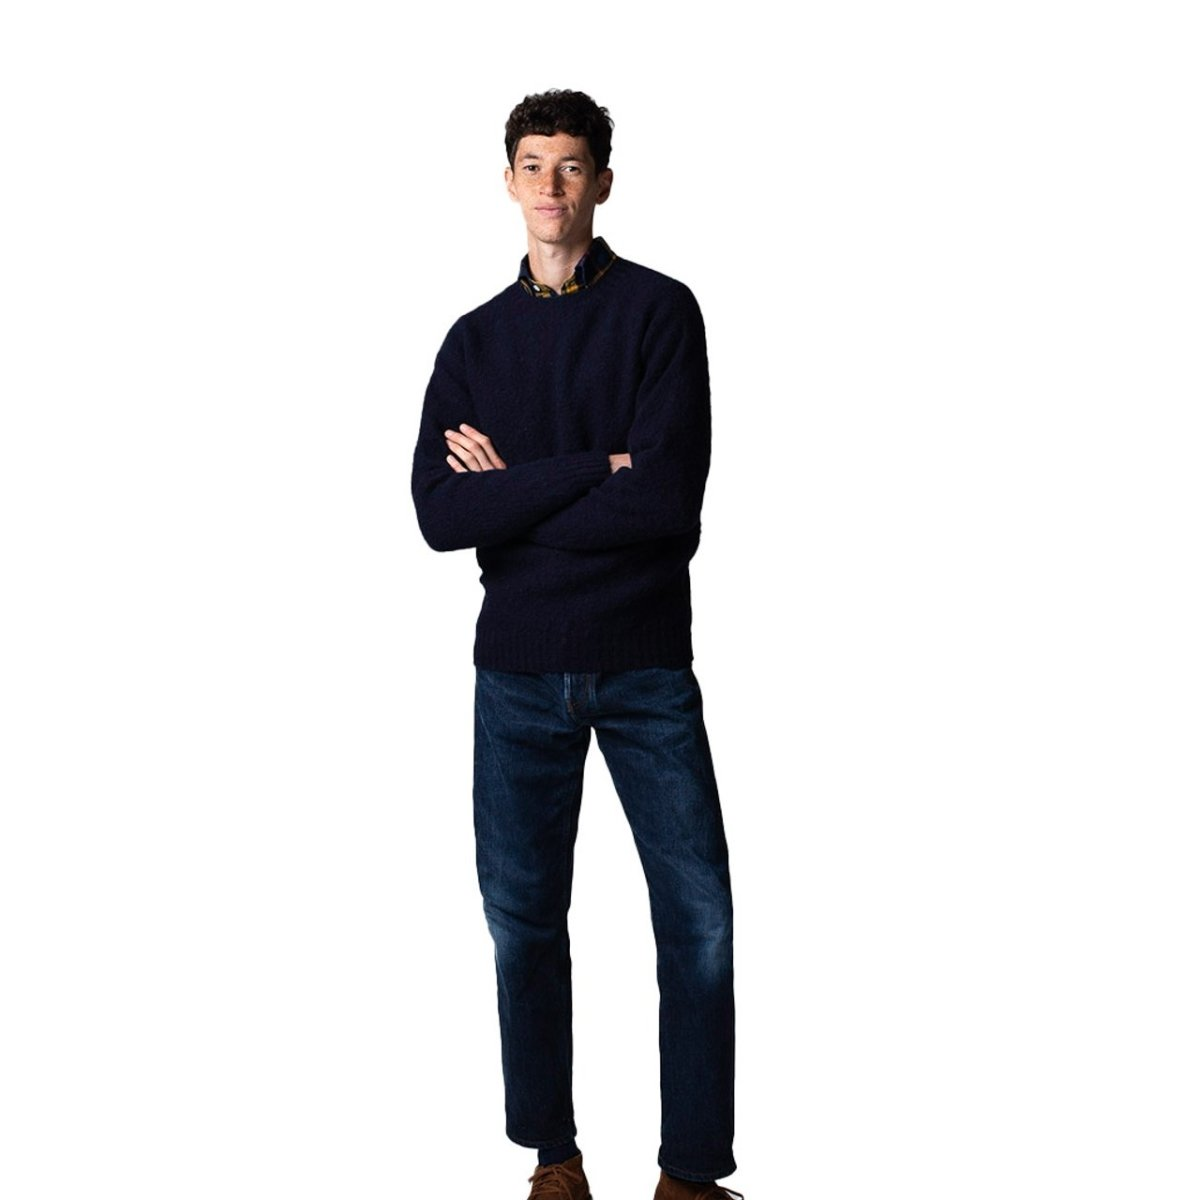 Drake's - Navy Brushed Shetland Wool Crew Neck Jumper, Knitwear | NEW TAILOR Webshop